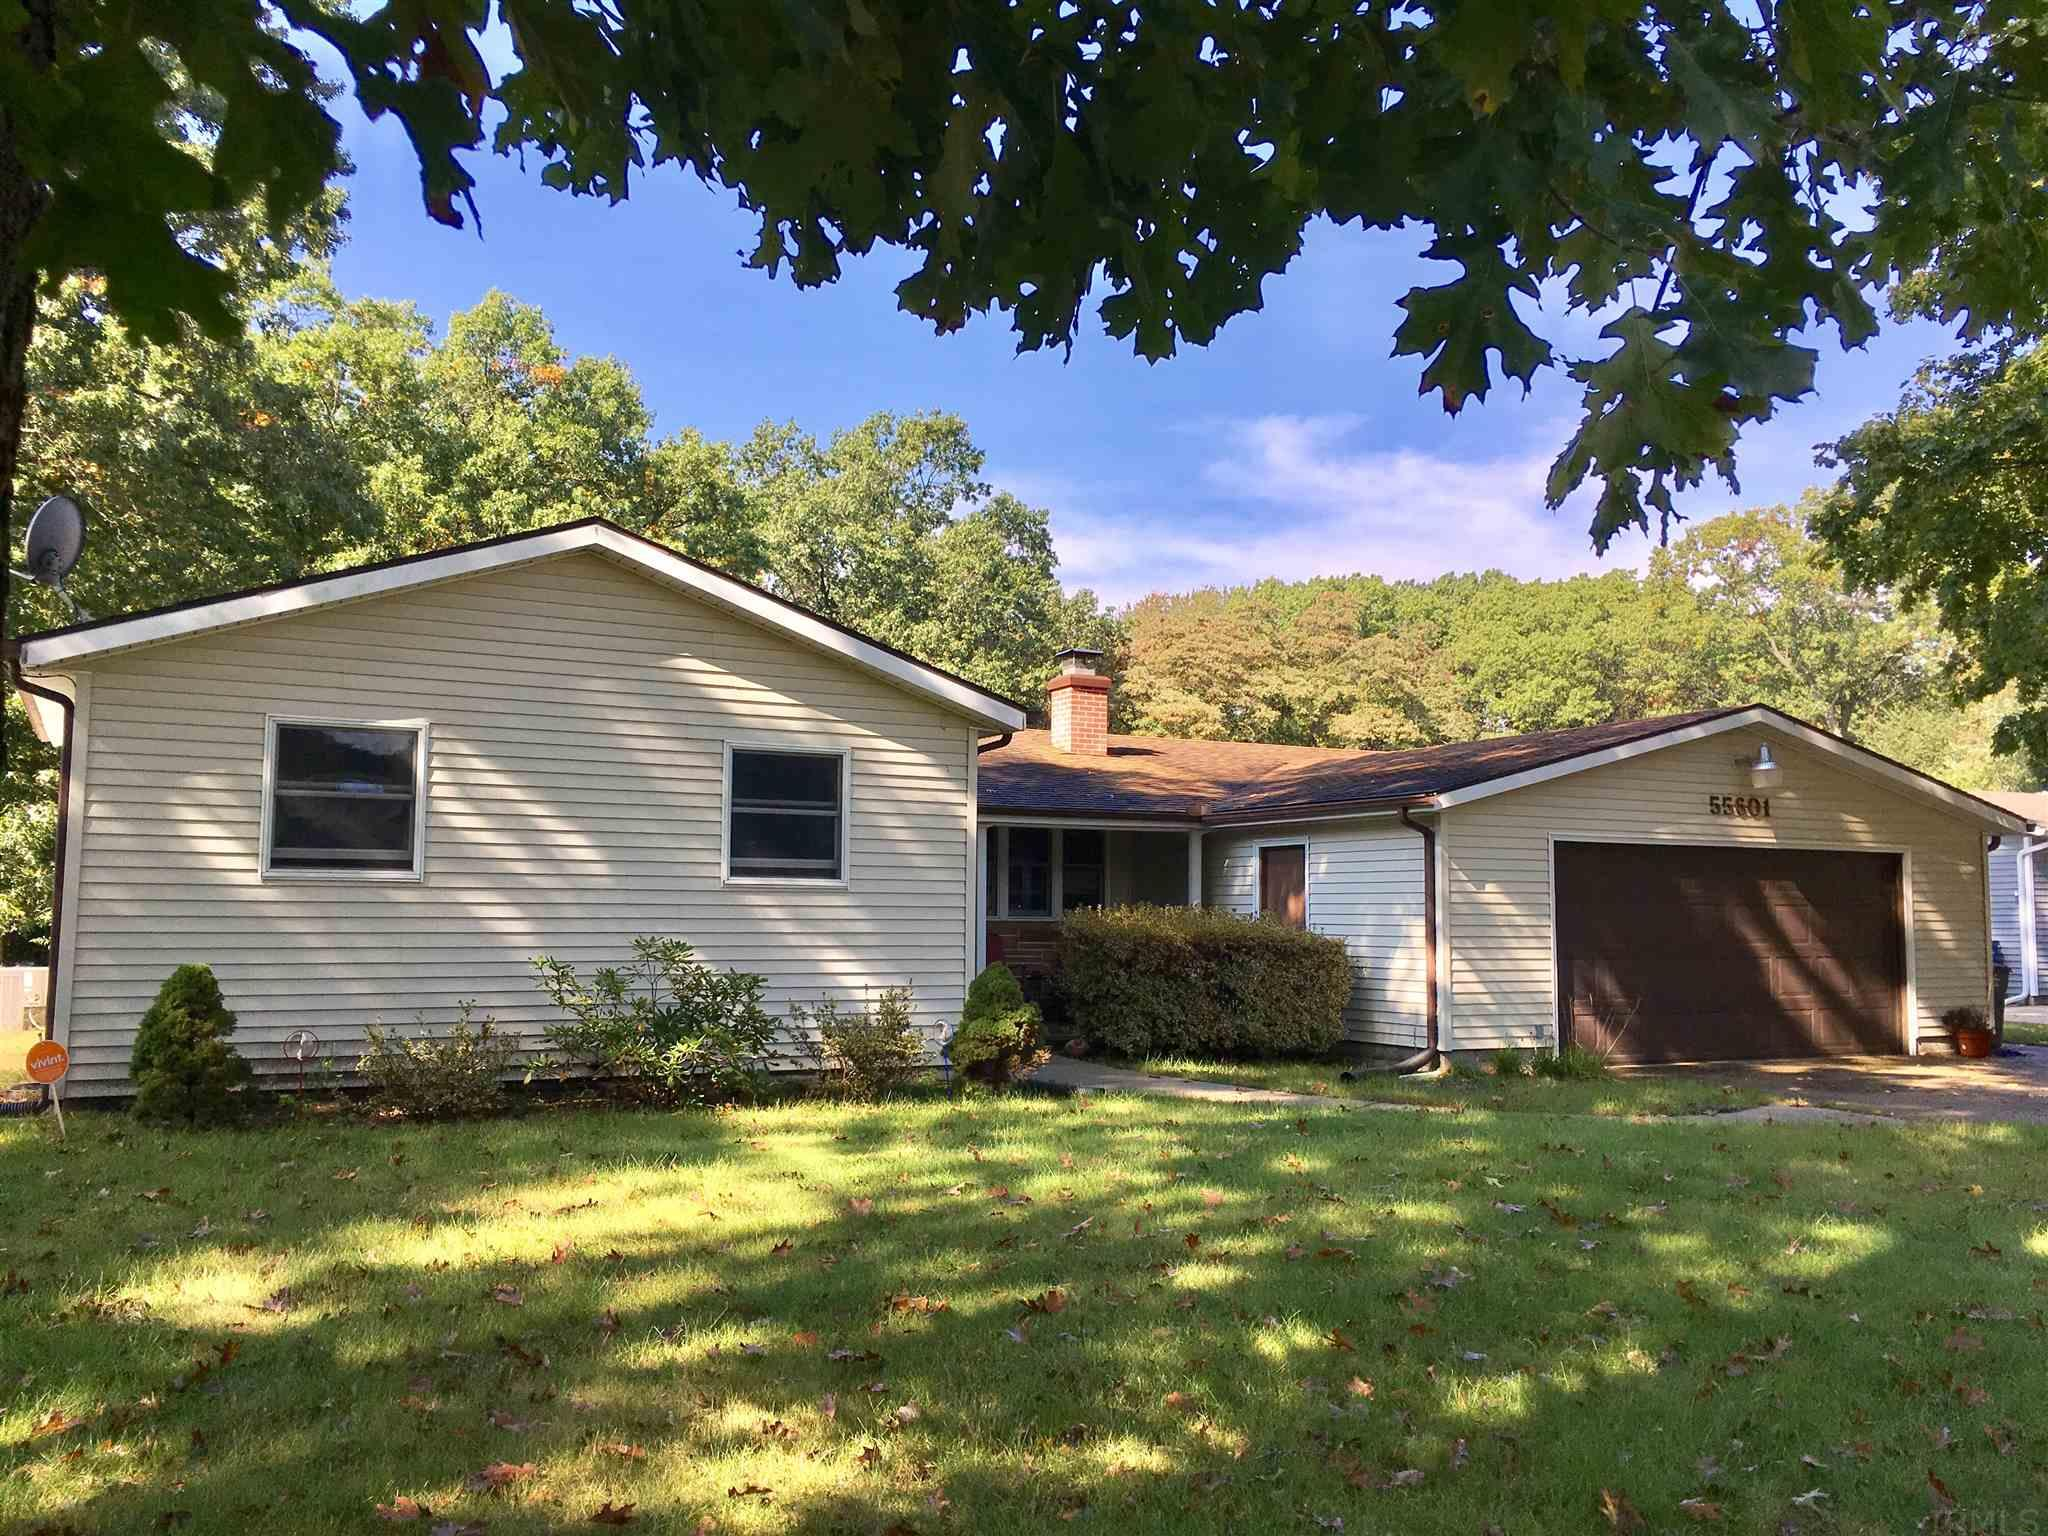 55601 Riviera Dr Elkhart, IN 46514